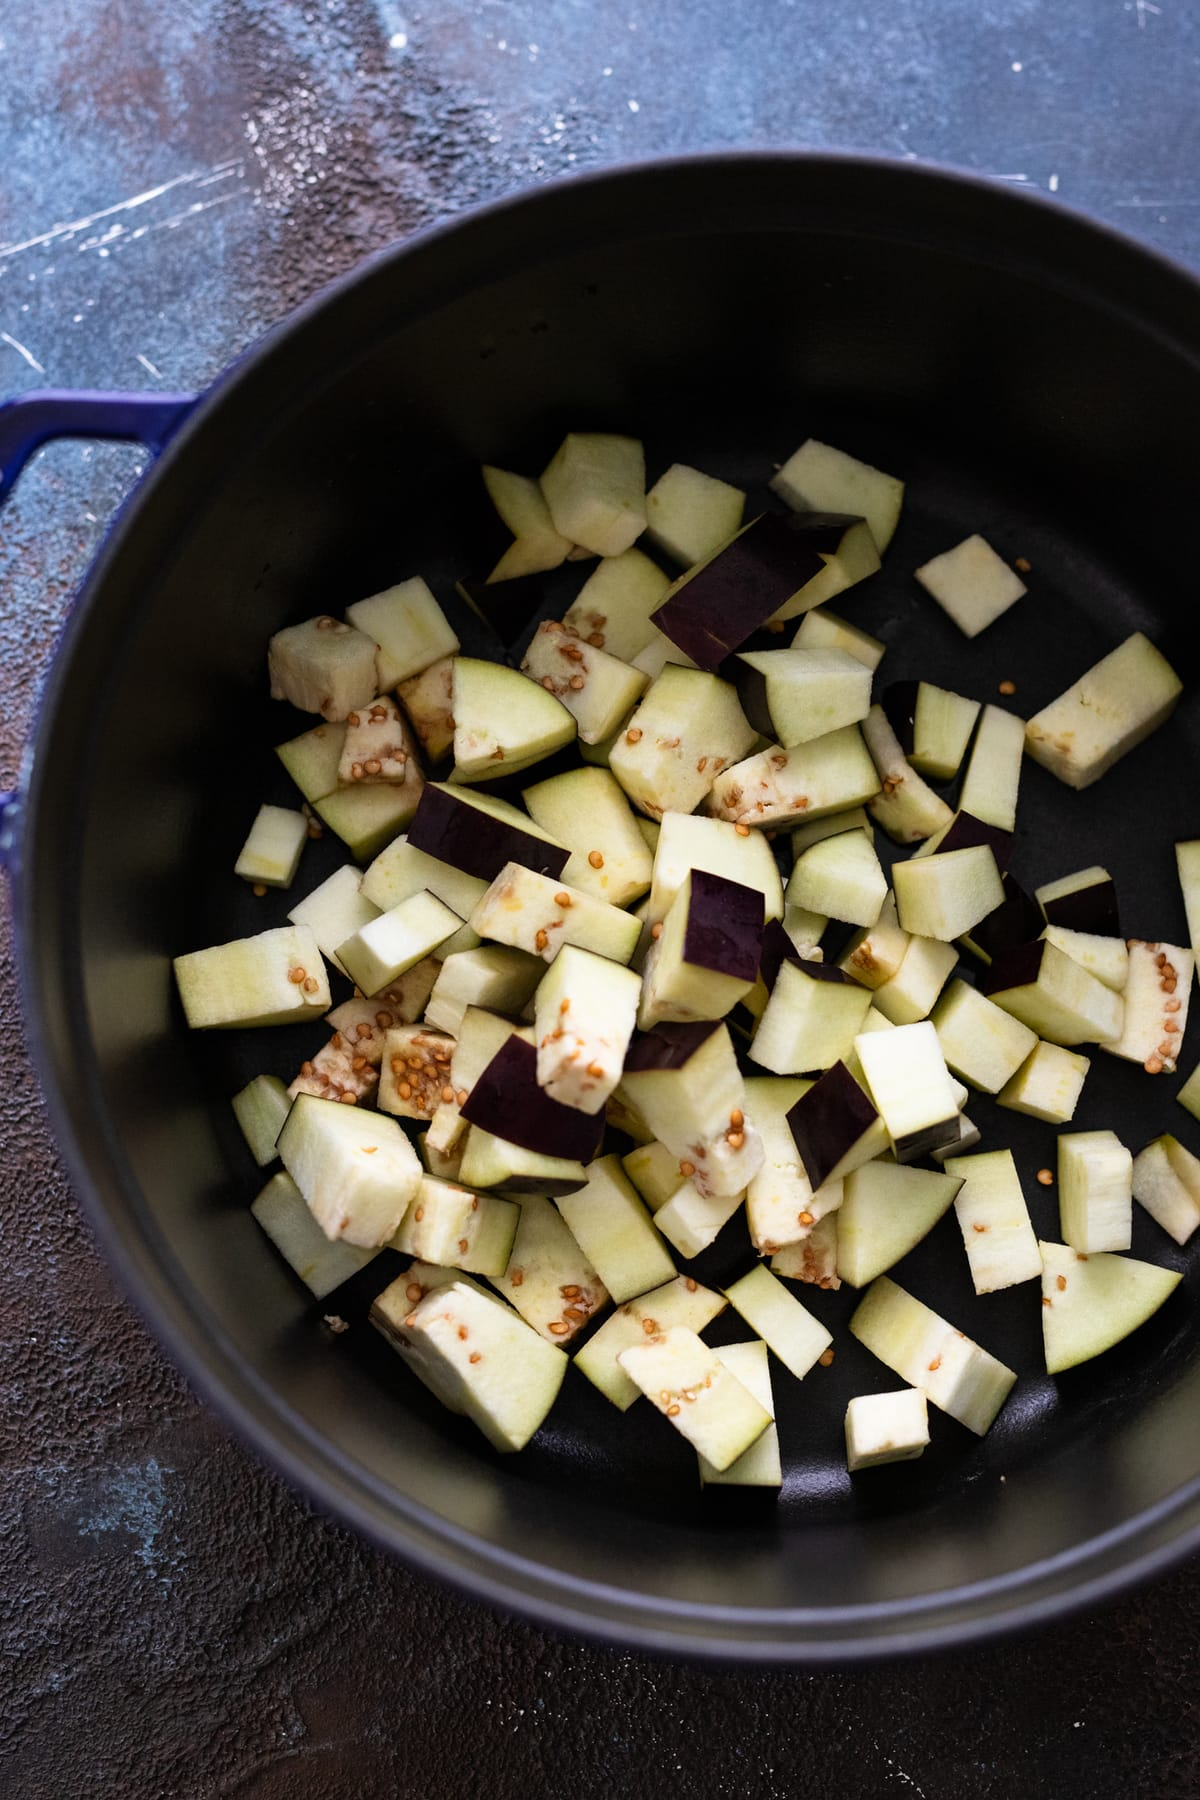 A cast iron dutch oven with cubed eggplant it it.